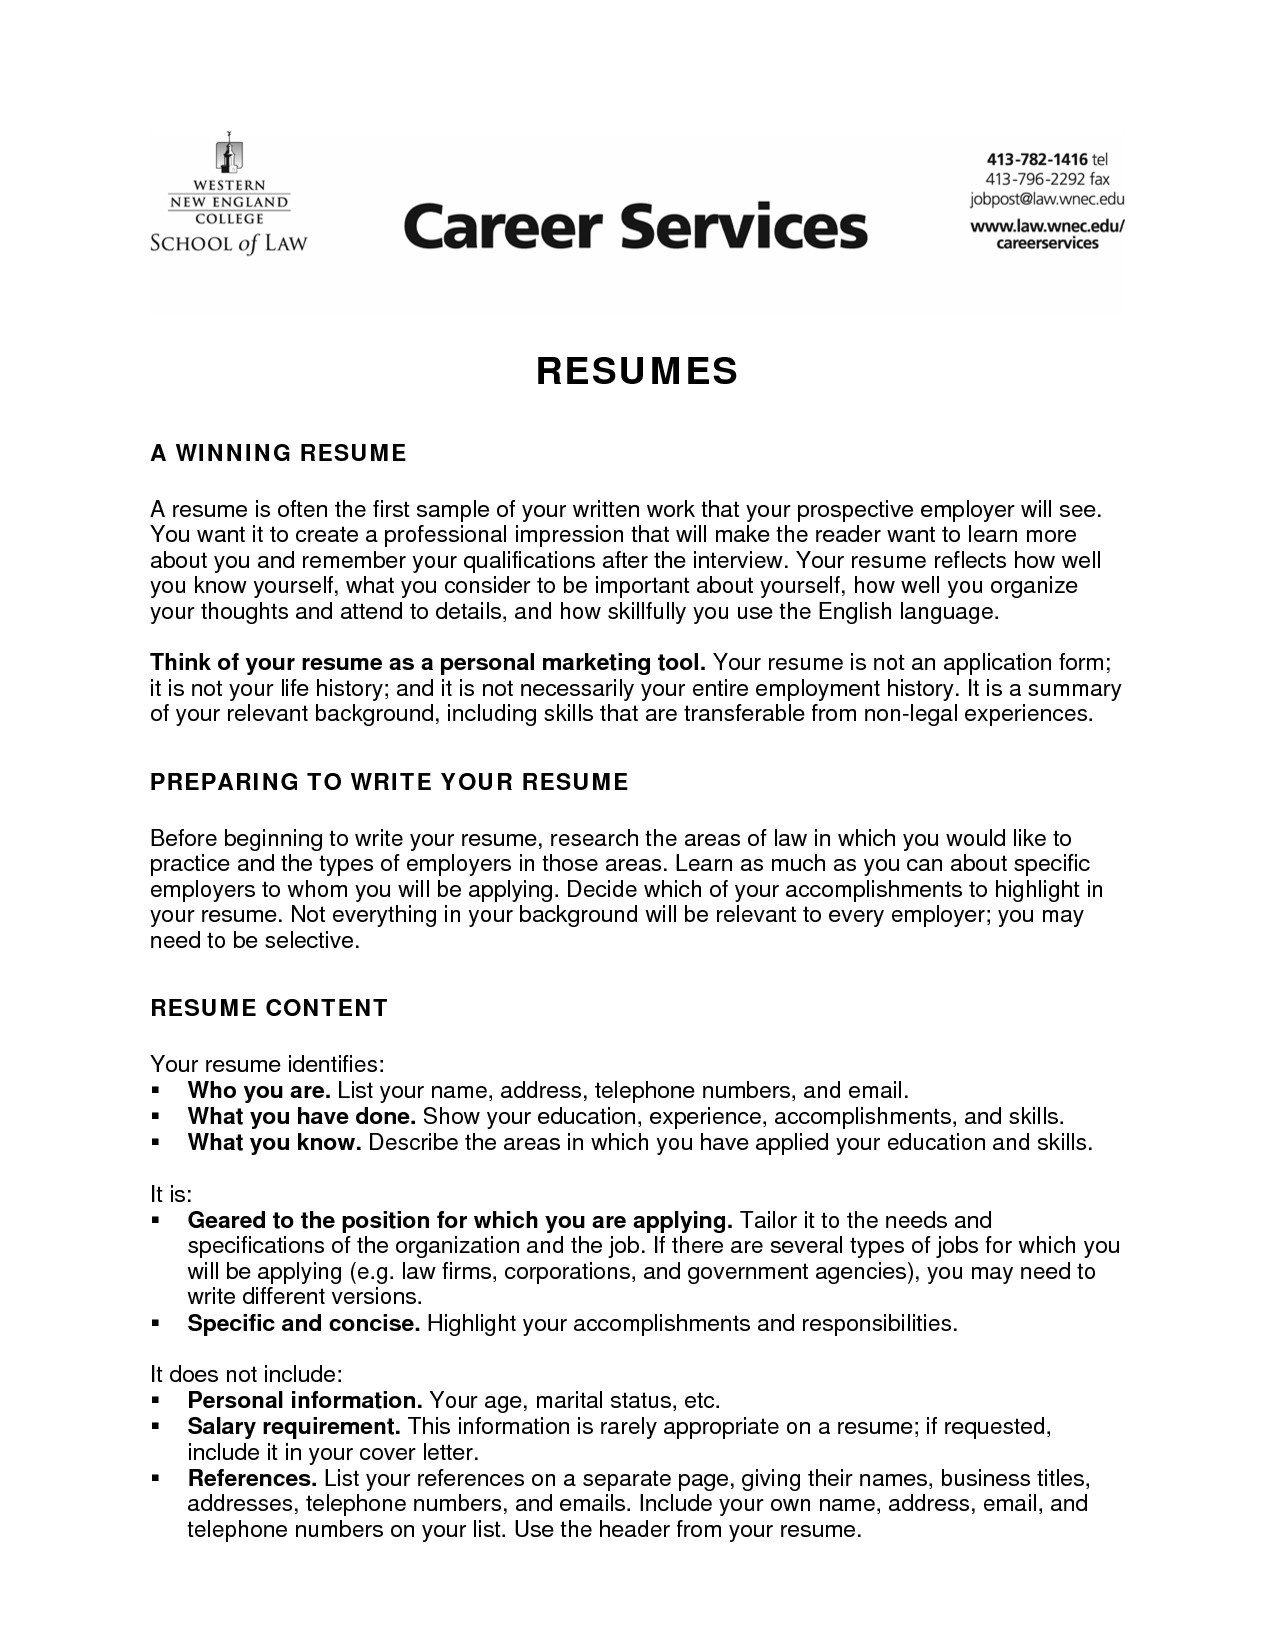 Beginners Resume Template - Nursing Resume Objective Examples Best Elegant Good Nursing